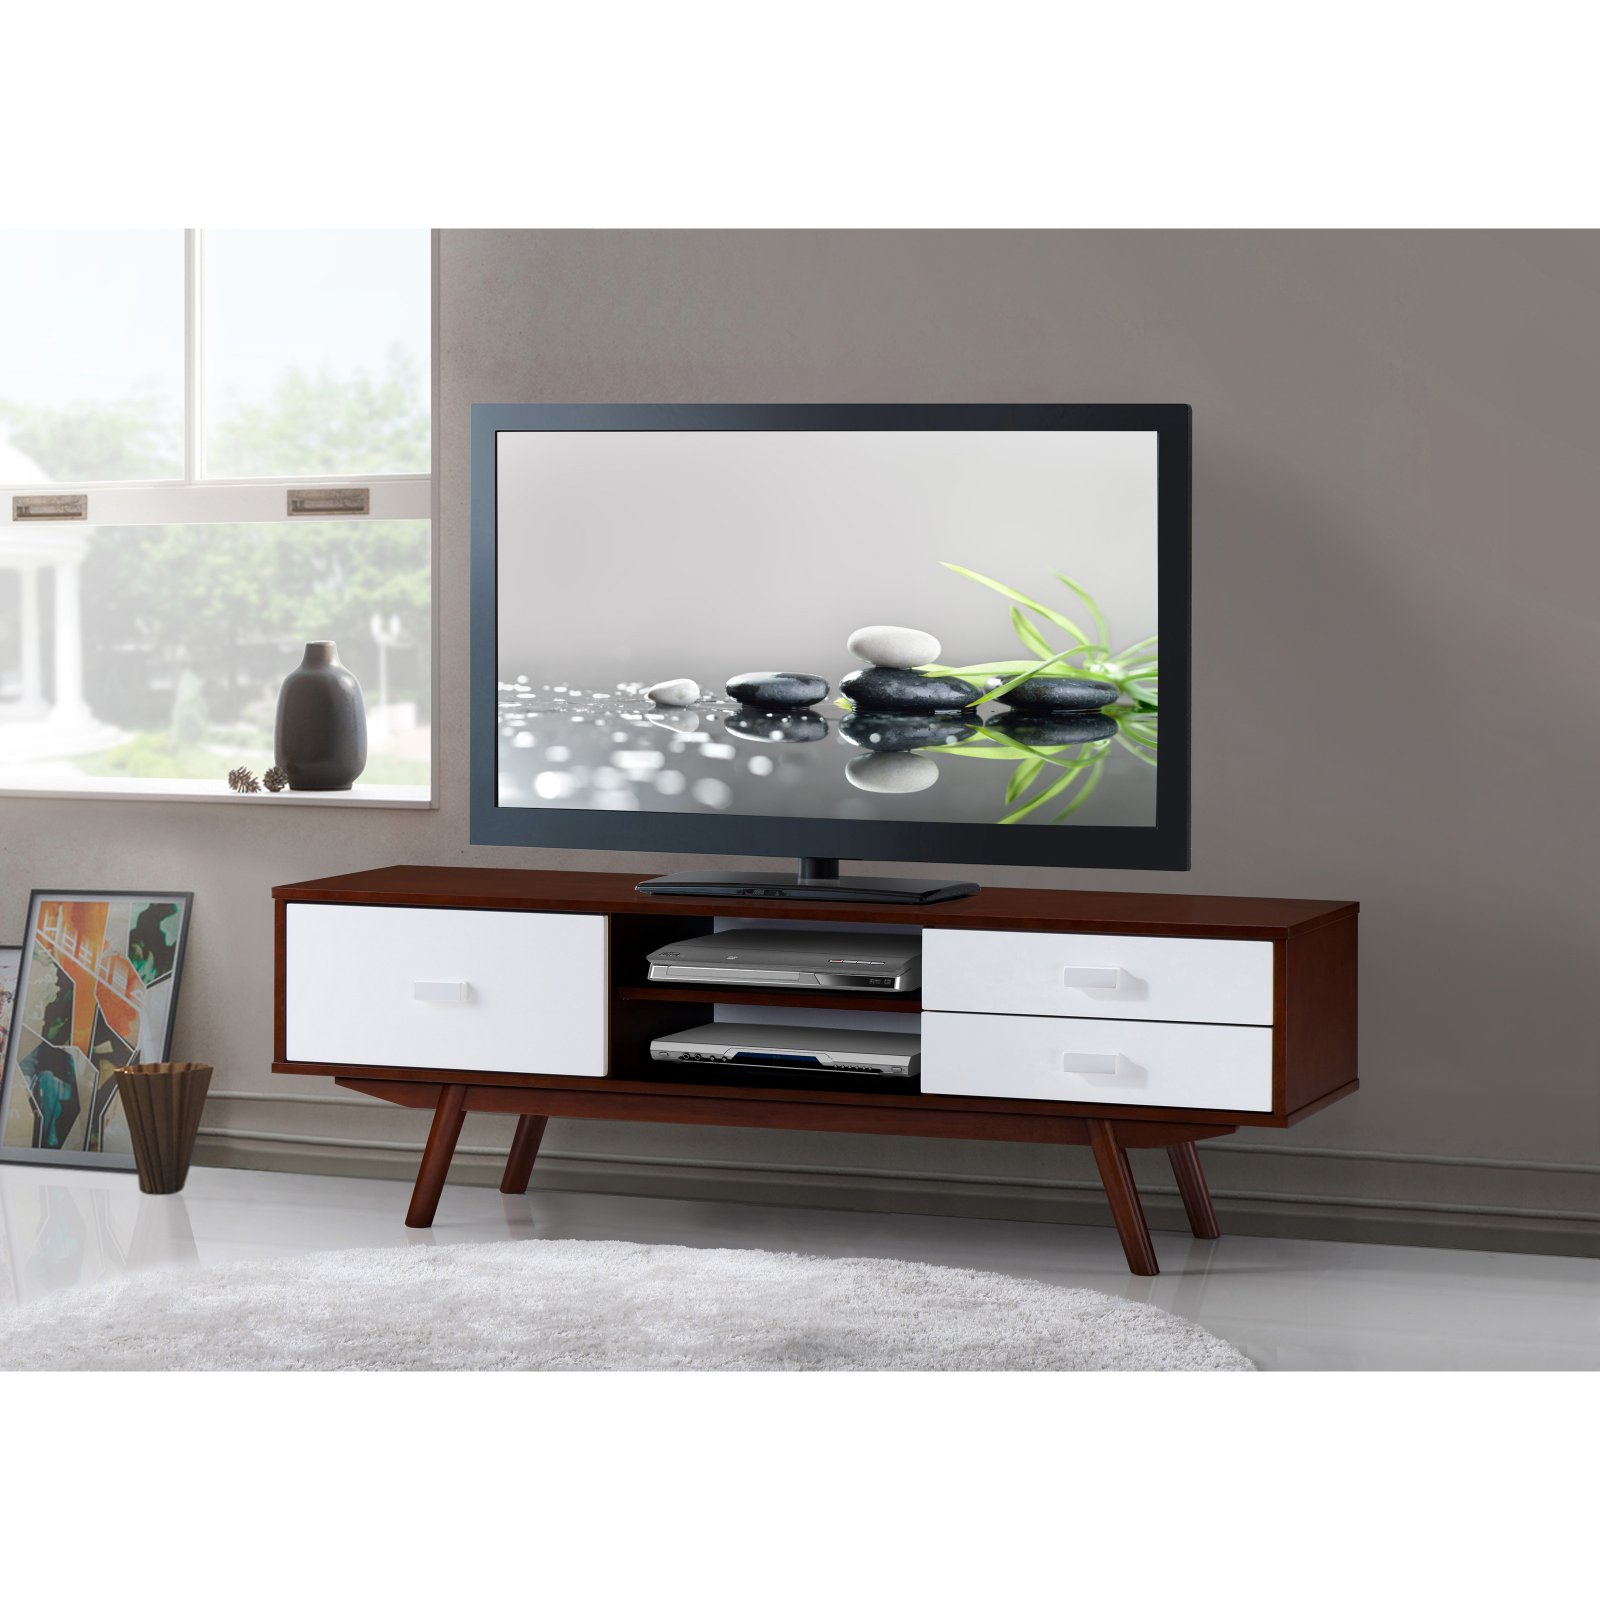 "Techni Mobili 55"" Retro Wood TV Stand for TVs up to 65"" with Storage, Walnut"